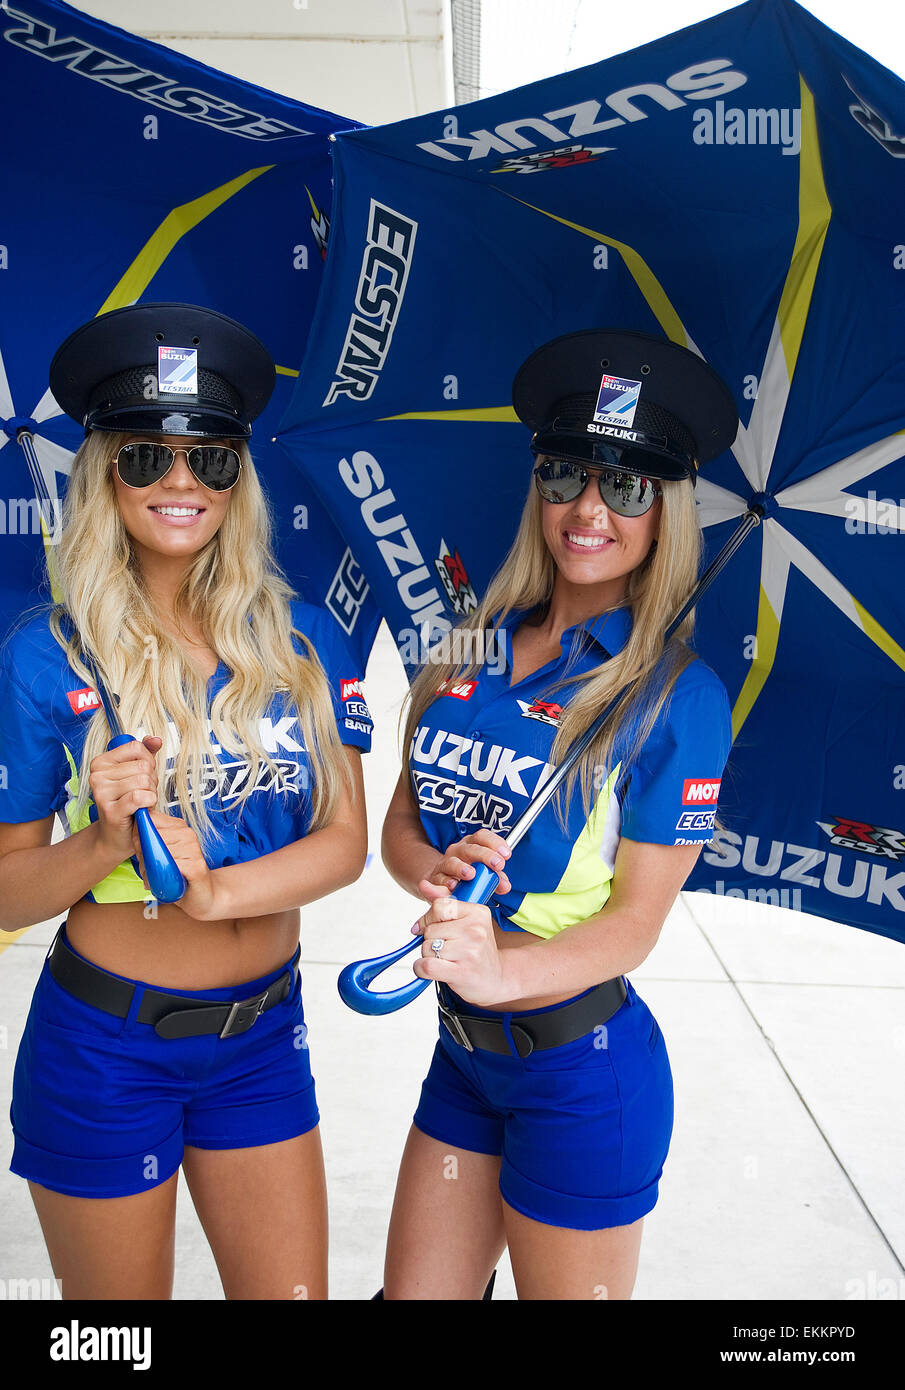 Austin, Texas, USA. 11th April, 2015. MotoGP Grid Girls in action at Stock Photo: 80955041 - Alamy